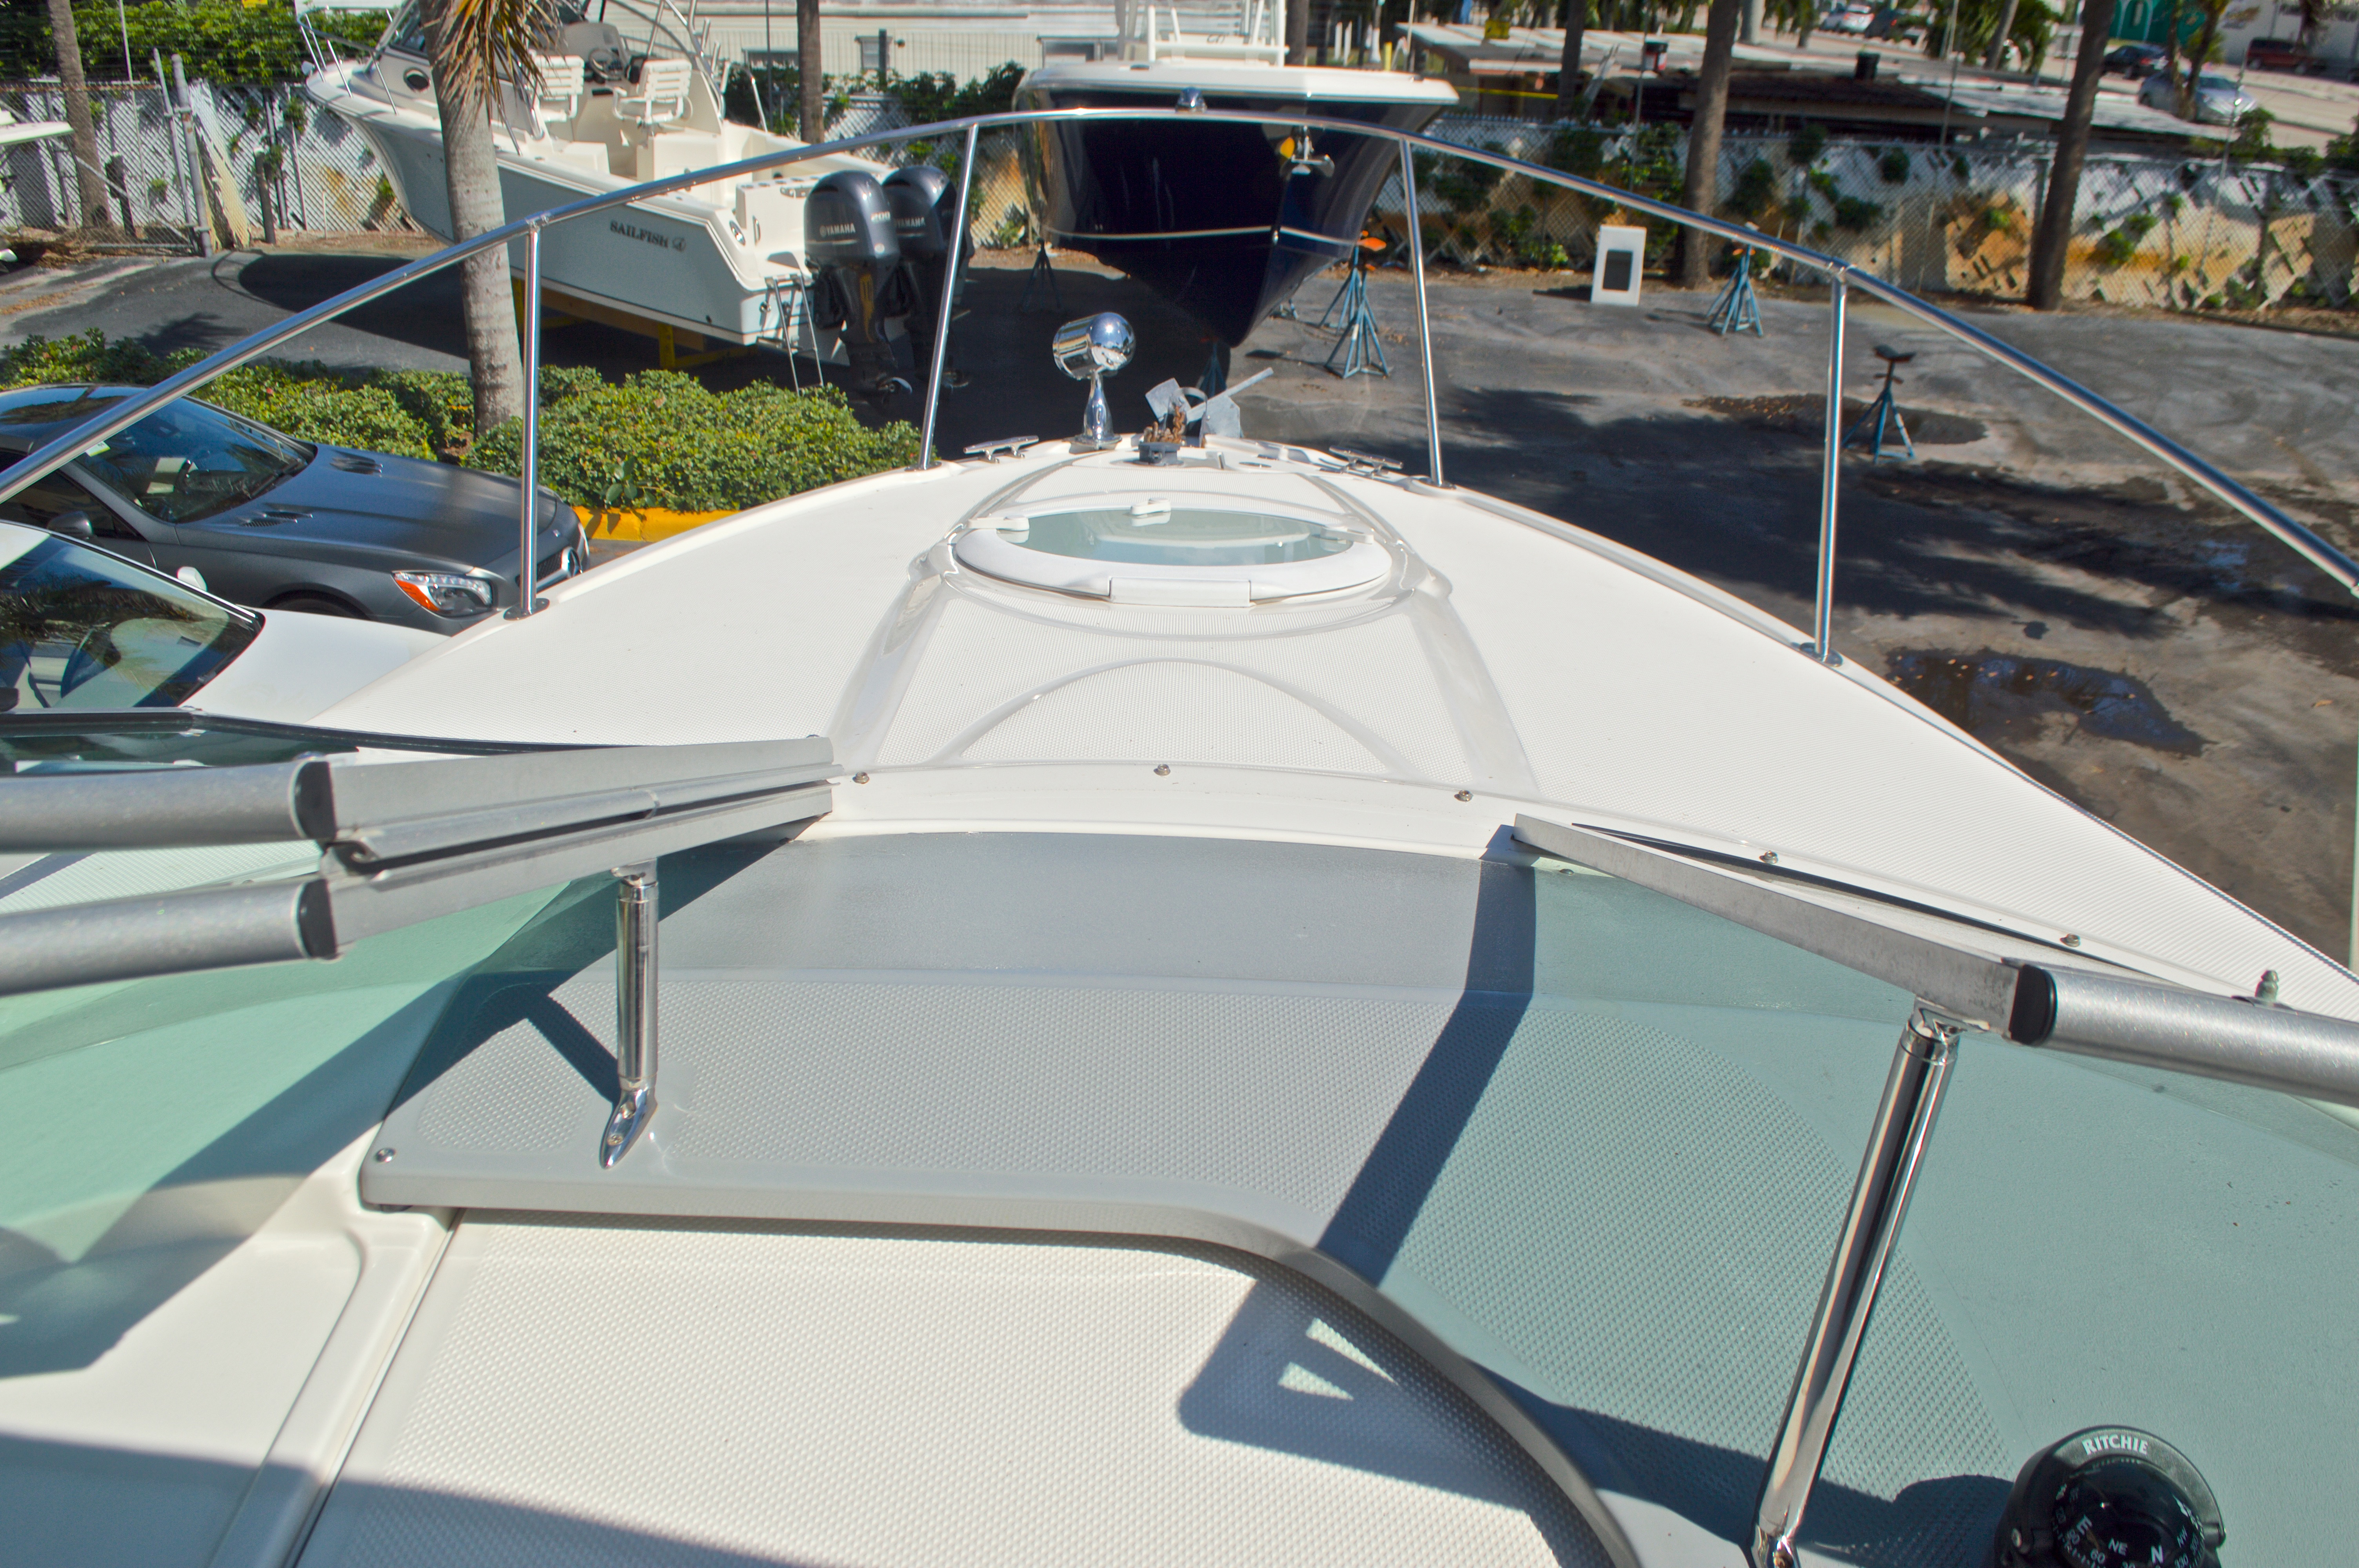 Thumbnail 38 for Used 2007 Maxum 2400 SE boat for sale in West Palm Beach, FL